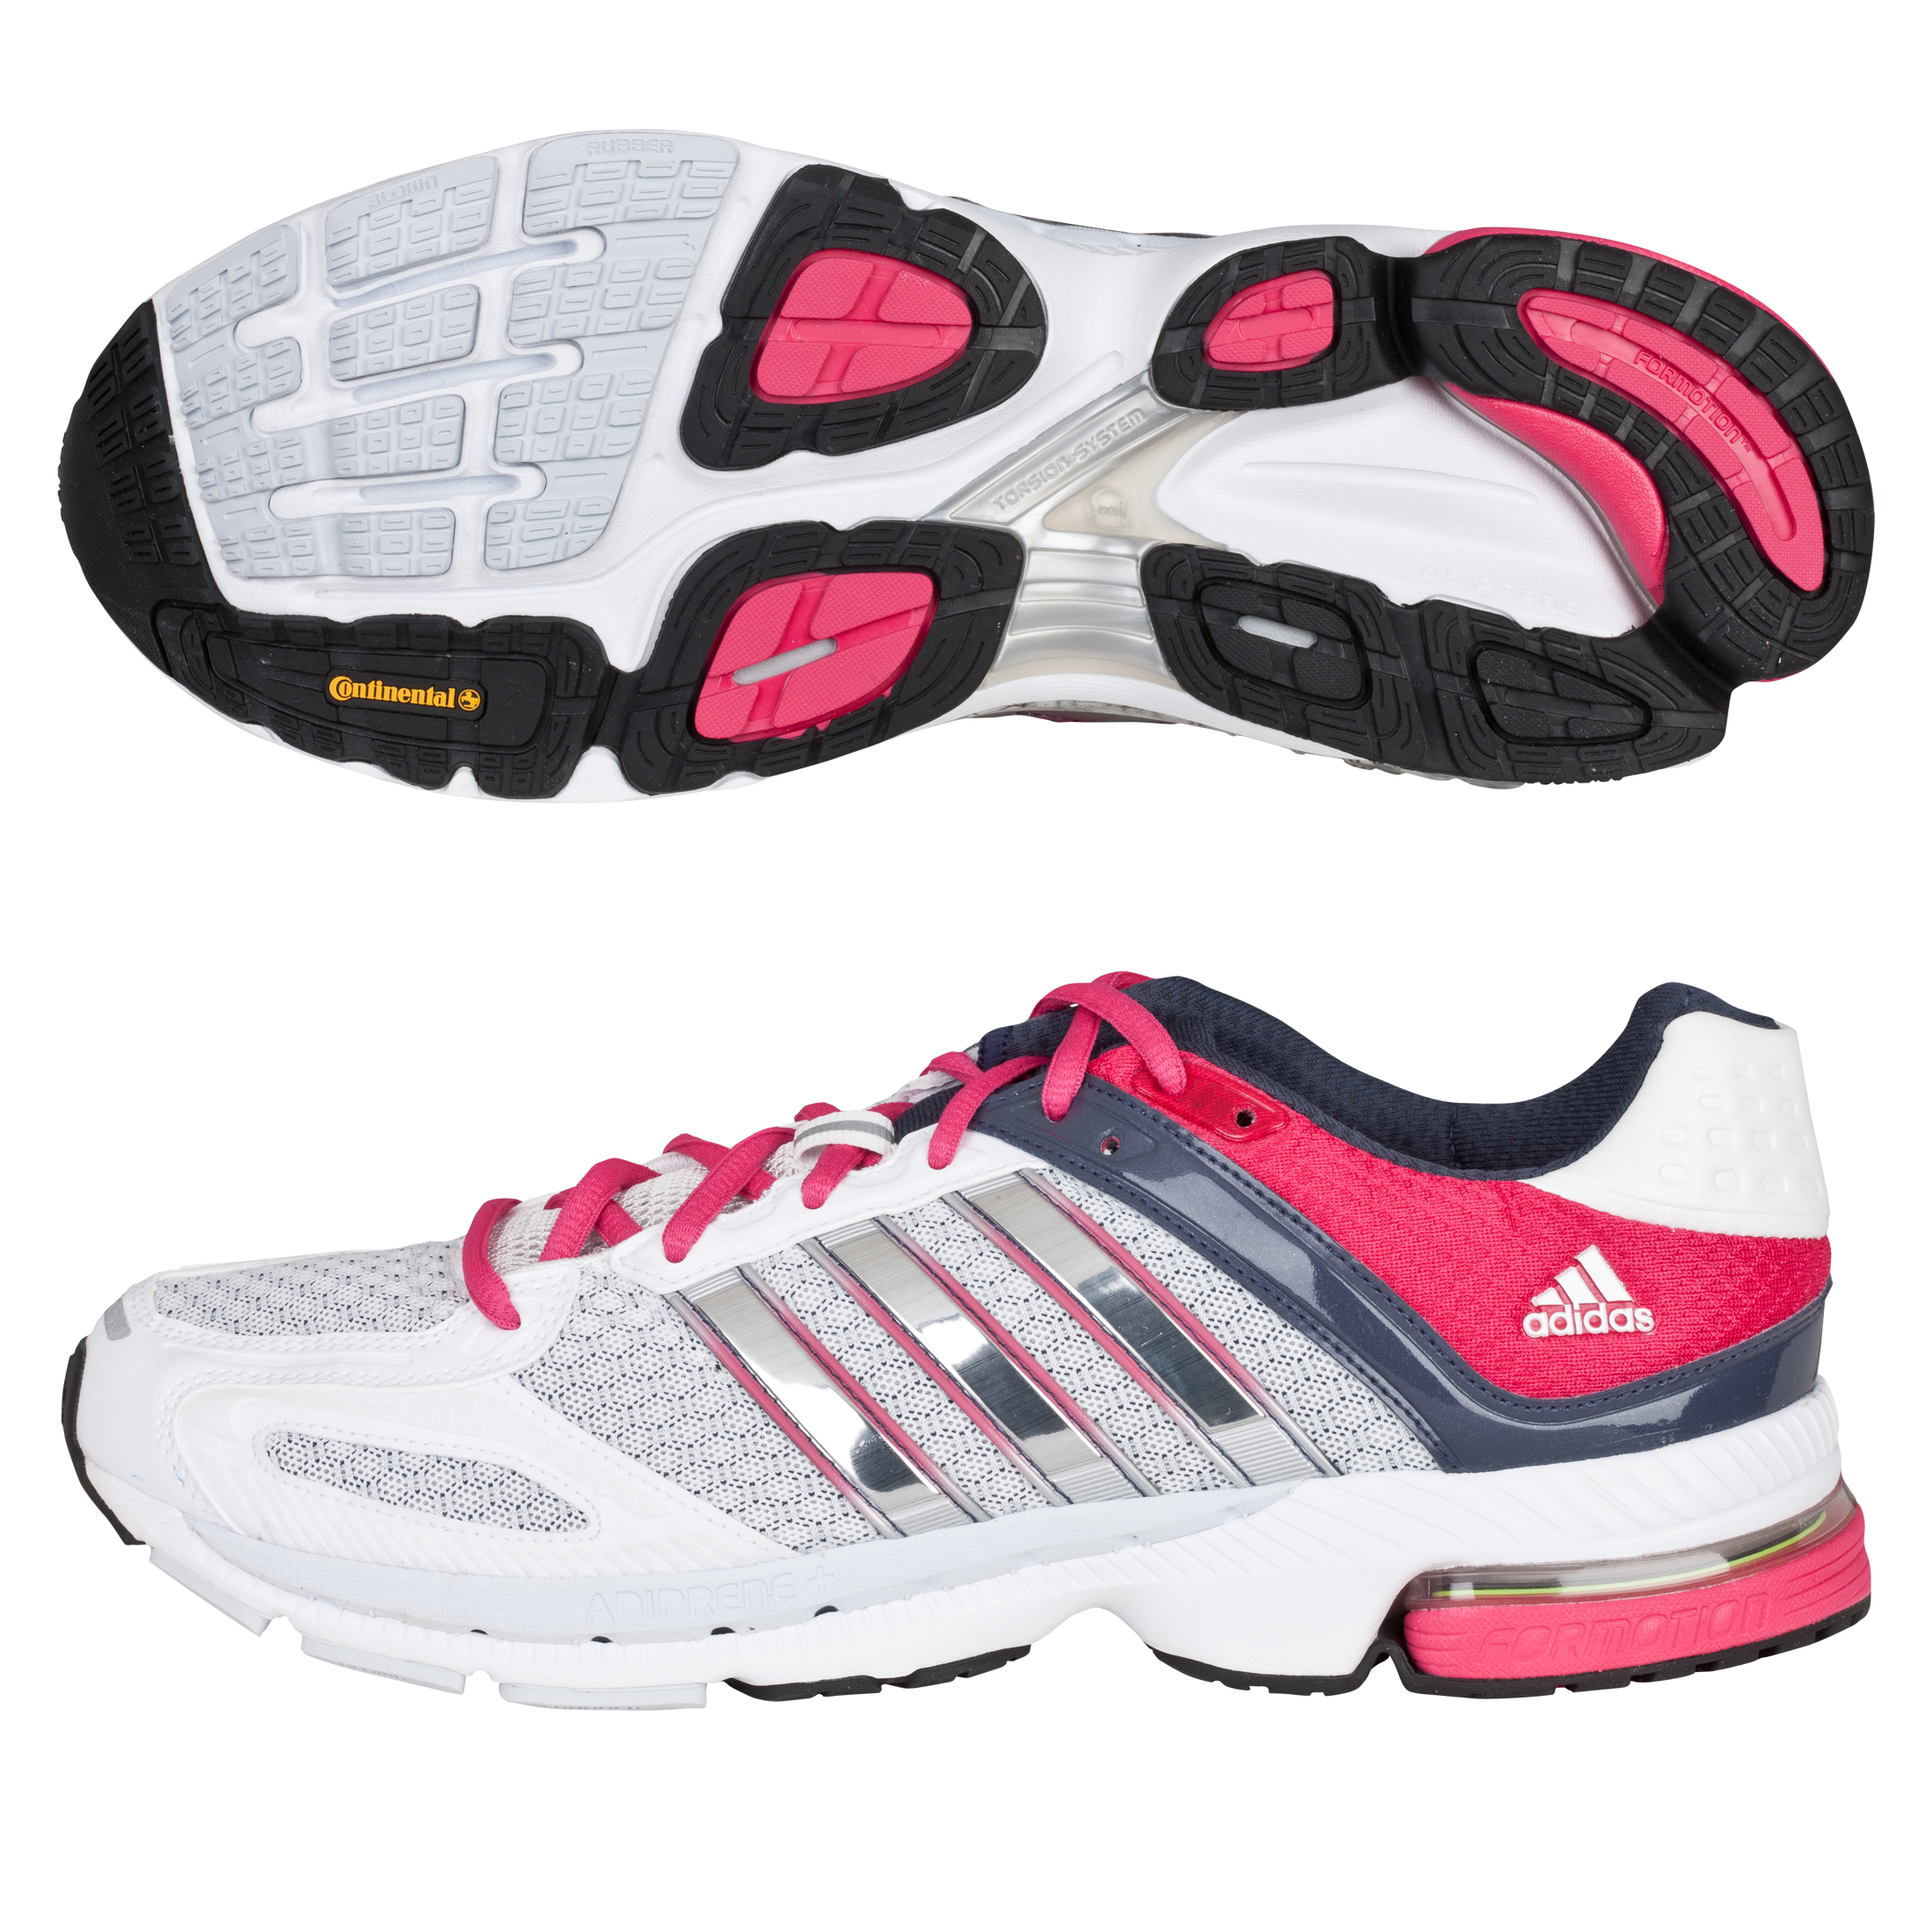 Adidas Snova Seq 5 Trainers - White/Zero Met/Bright Pink - Womens